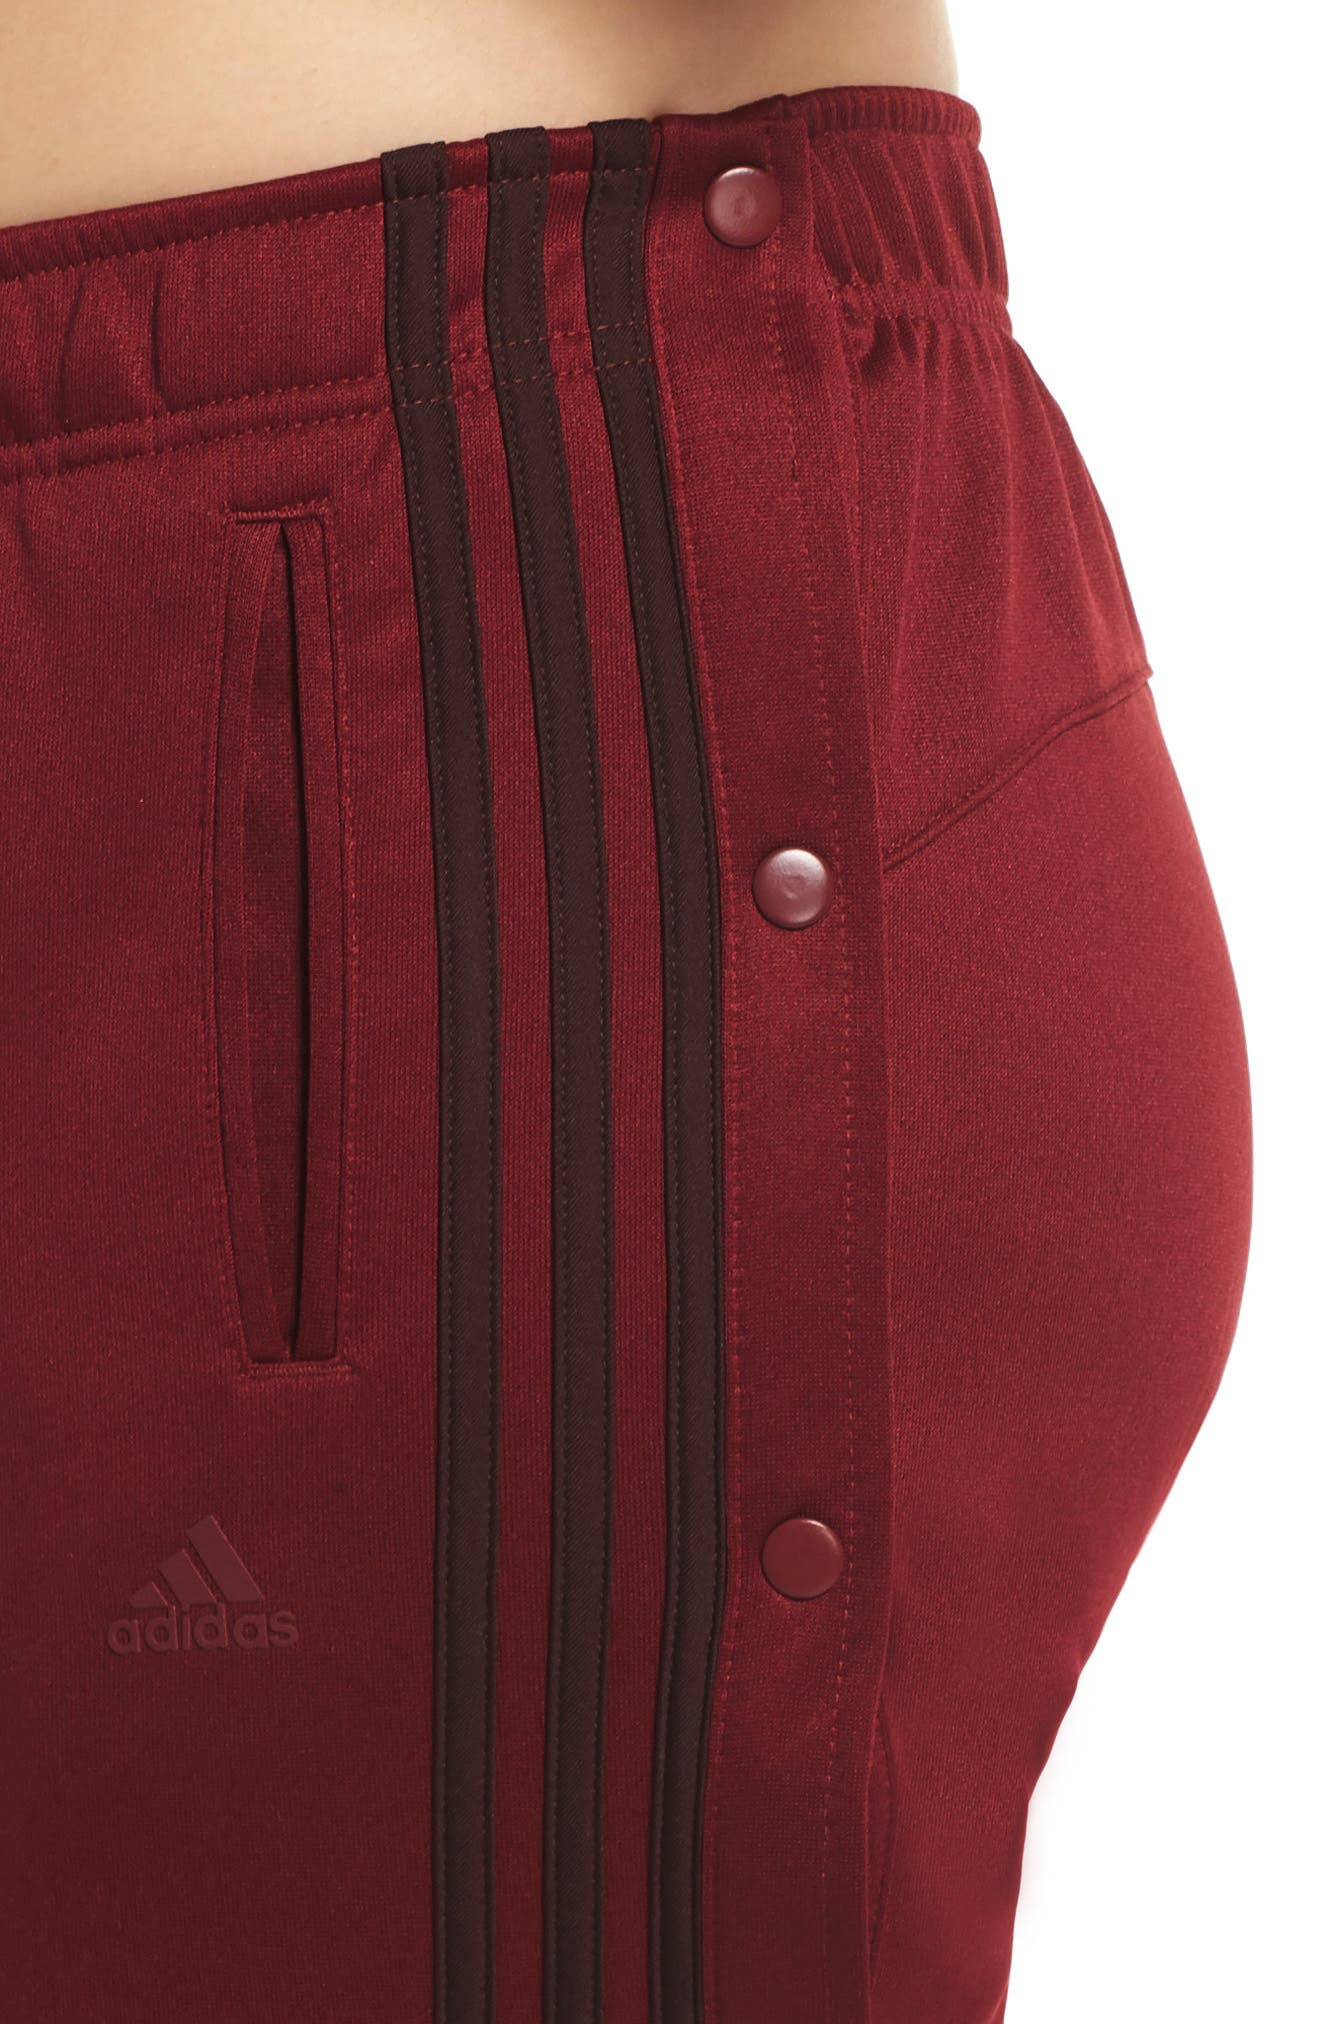 Tricot Snap Pants,                             Alternate thumbnail 10, color,                             NOBLE MAROON/ NIGHT RED